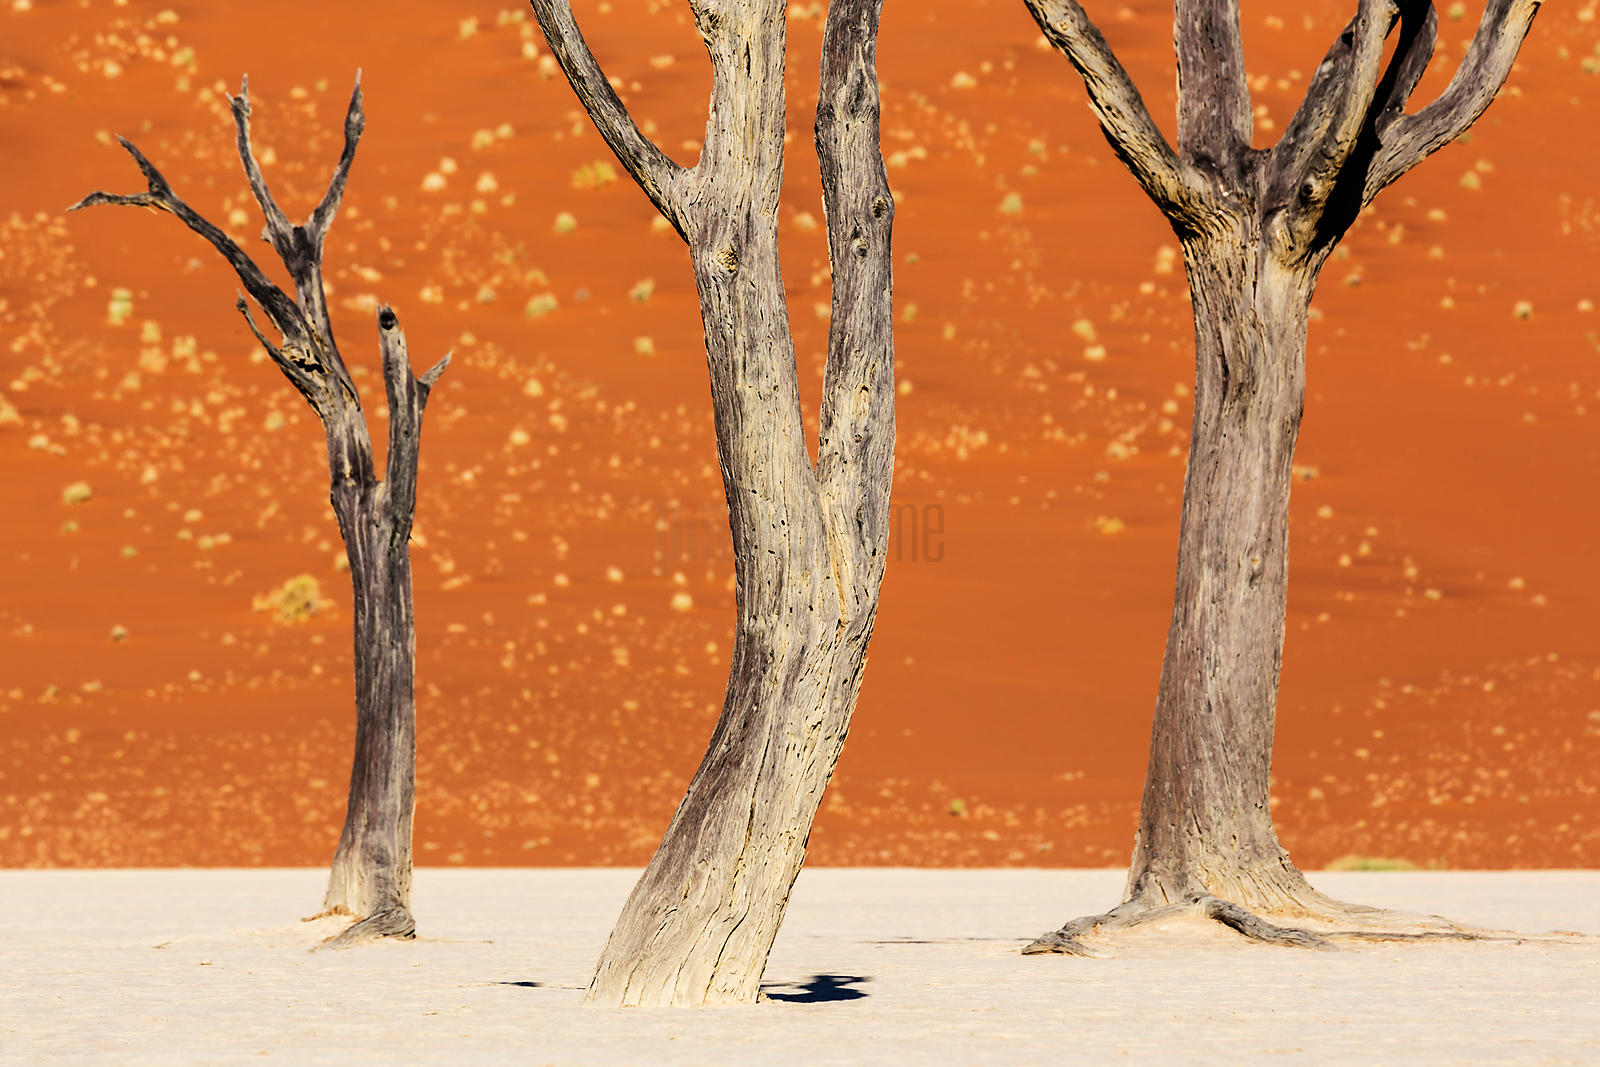 Dead Trees Against a Dune Background